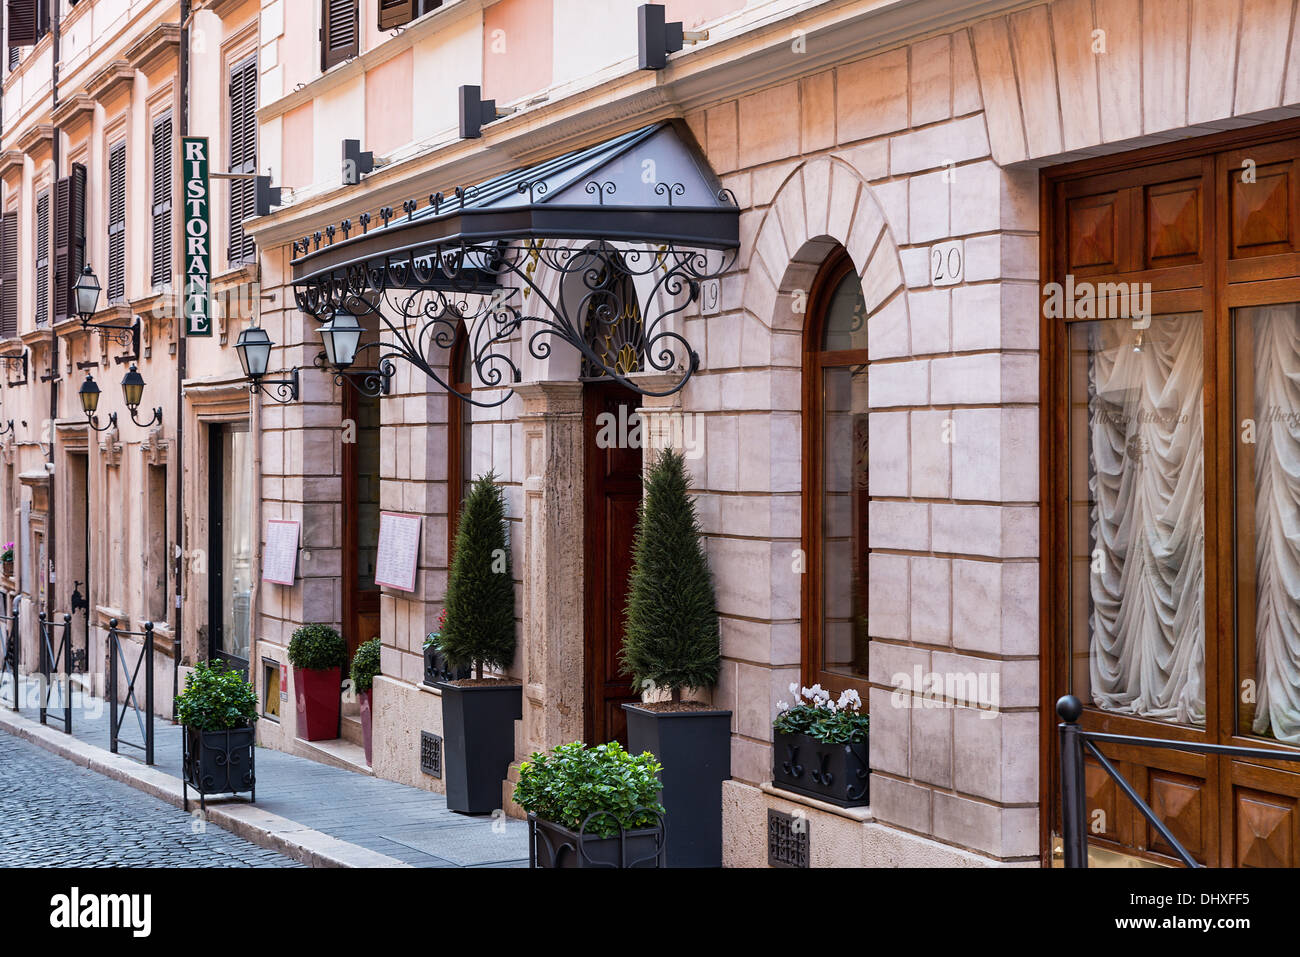 Italian restaurant exterior -  Facade Of Italian Restaurant On A Quaint Street Rome Italy Stock Photo